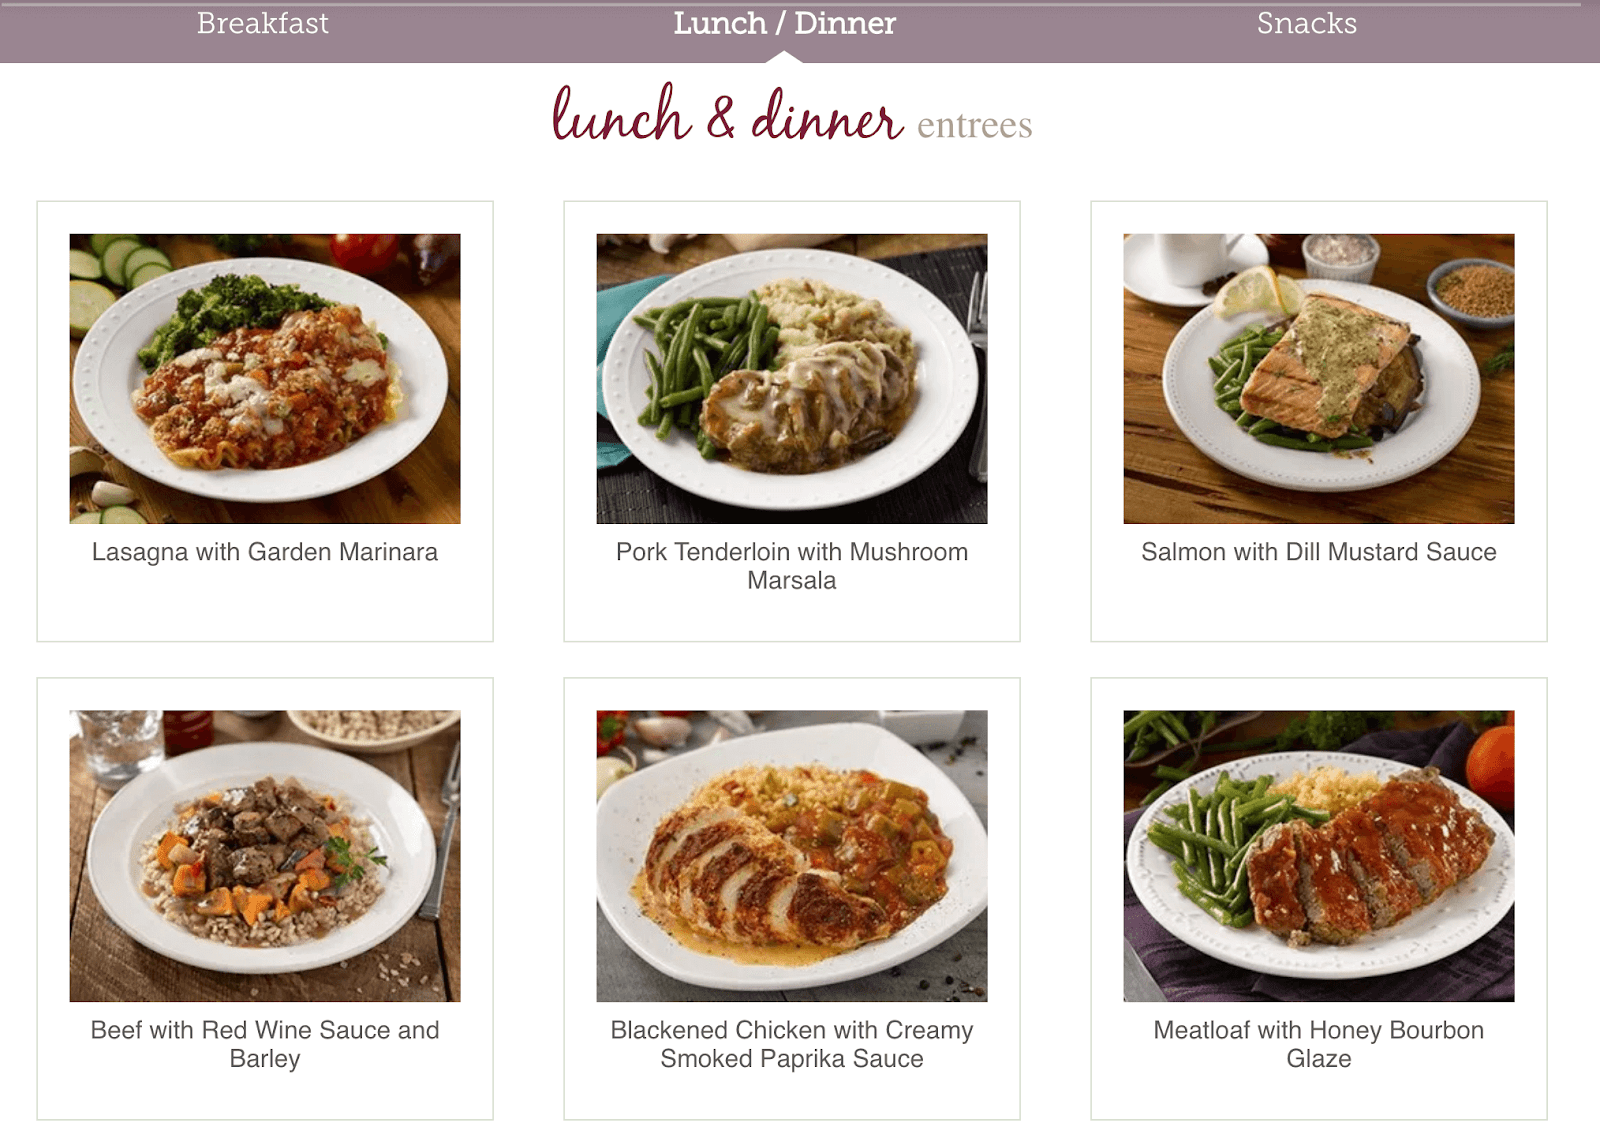 Screen shot of meal options